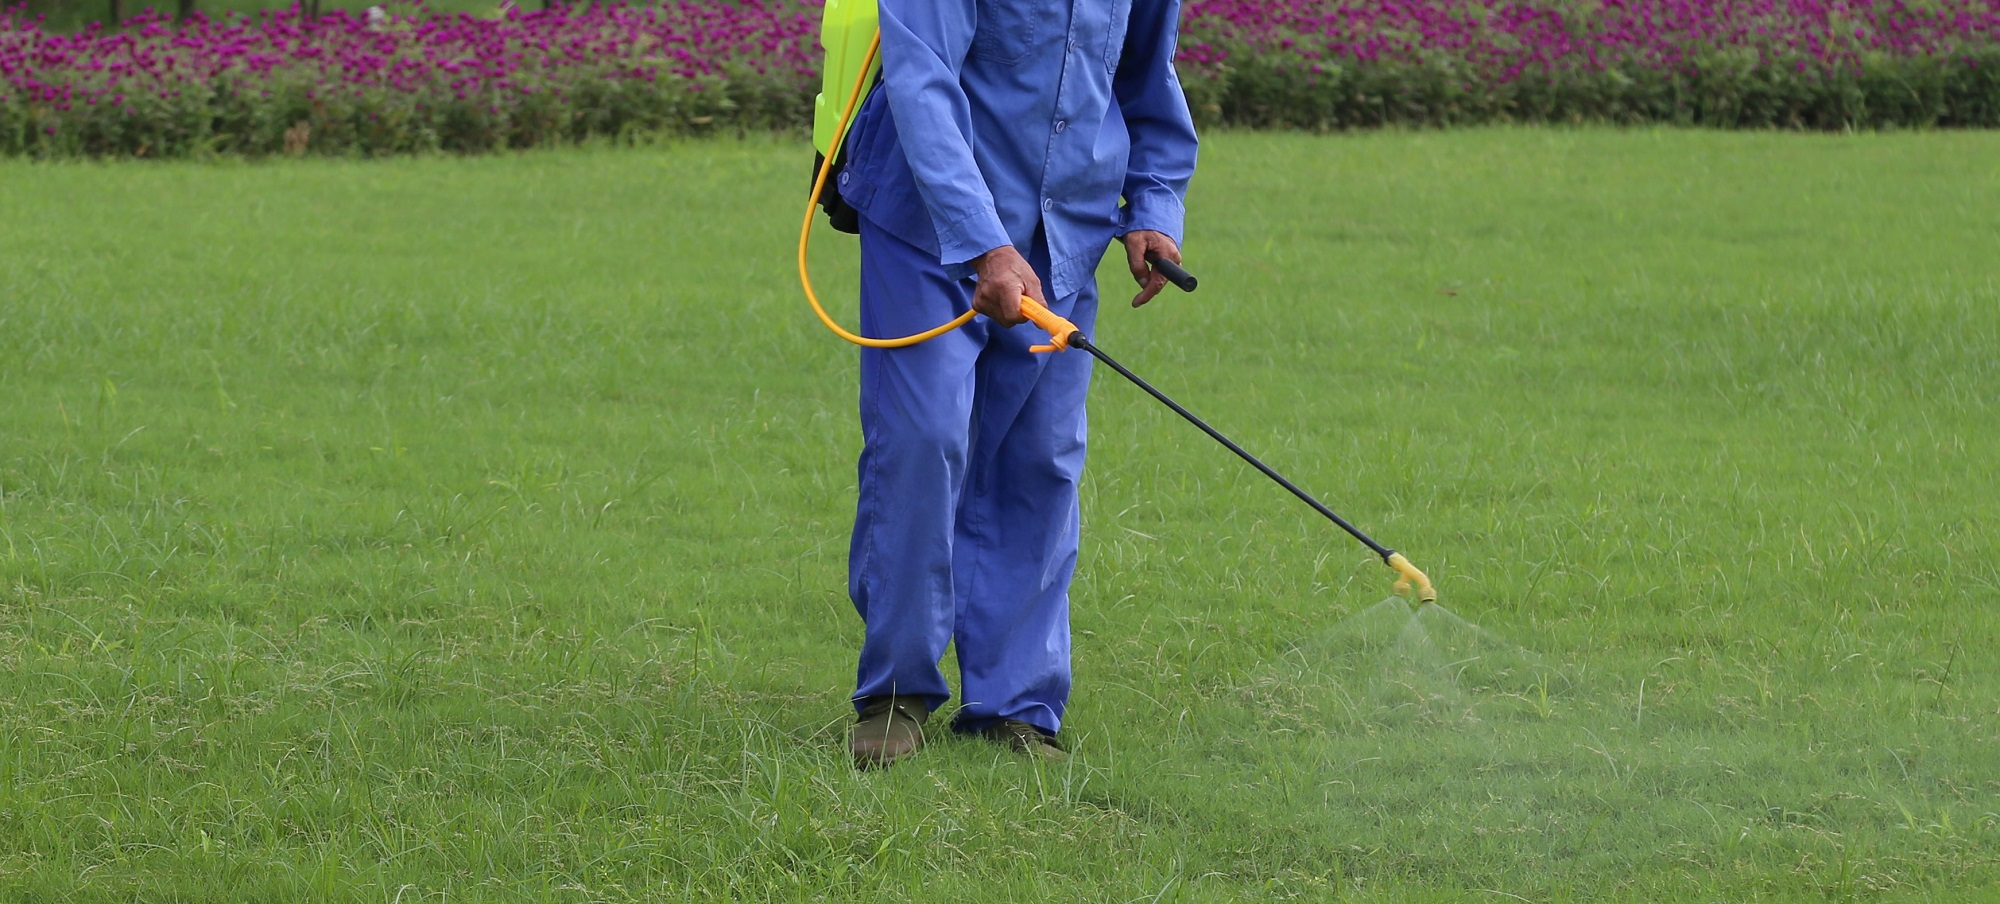 Pesticides are sprayed on our urban green spaces